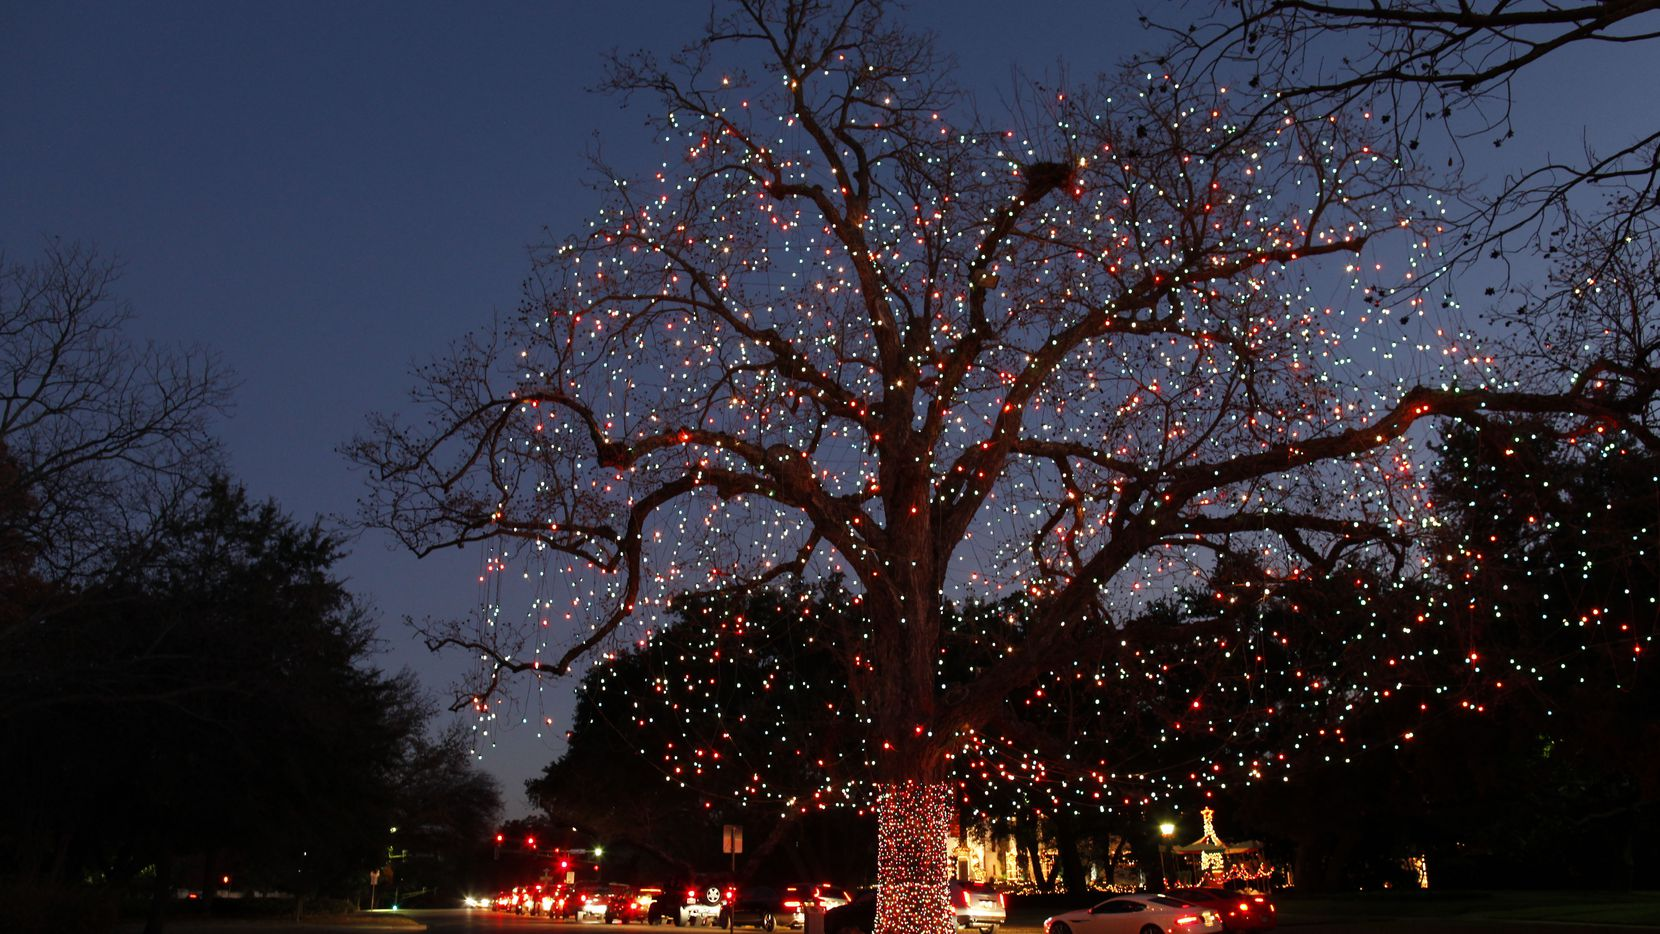 The legendary Big Pecan Tree lived through the Civil War, World War II and many other historic events. It was chopped down due to age starting on Oct. 21, 2019.